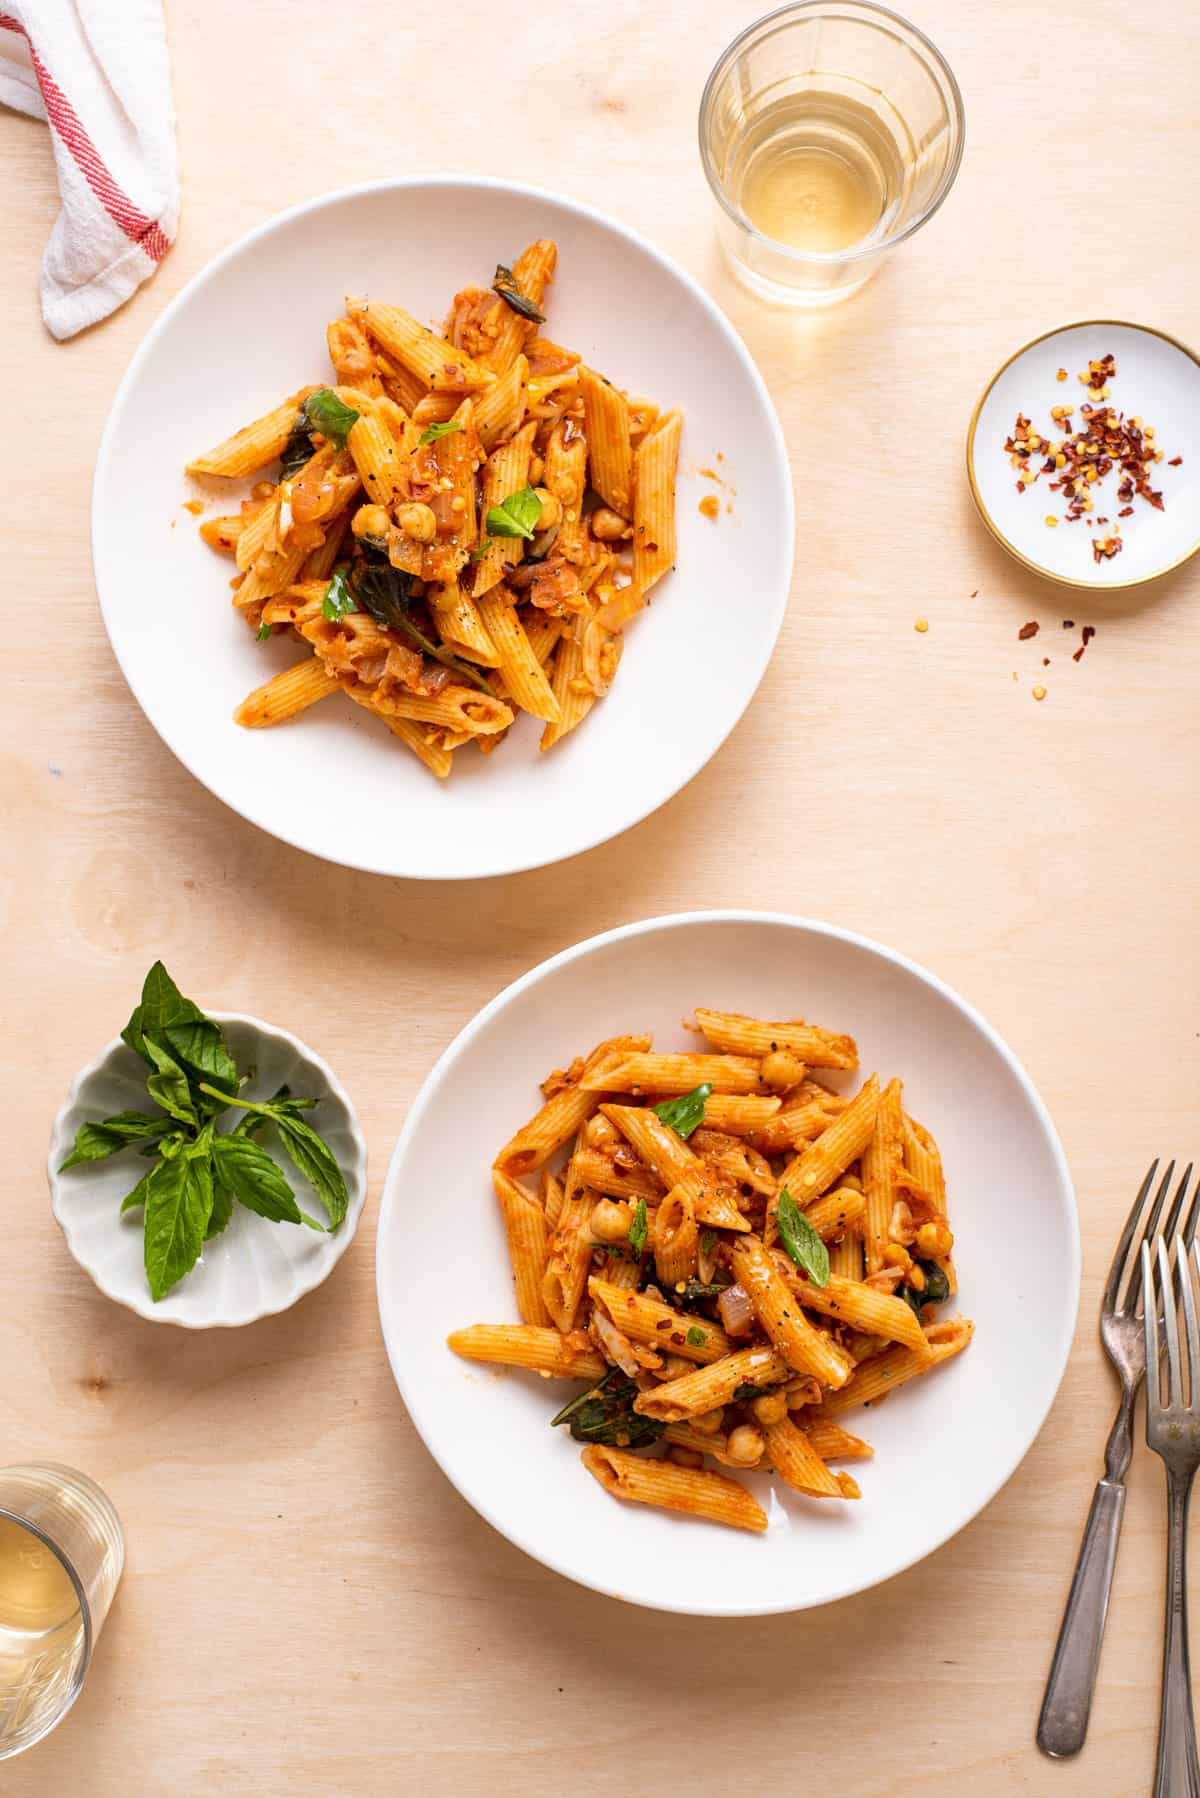 Two bowls of chickpea tomato pasta on a wooden table.